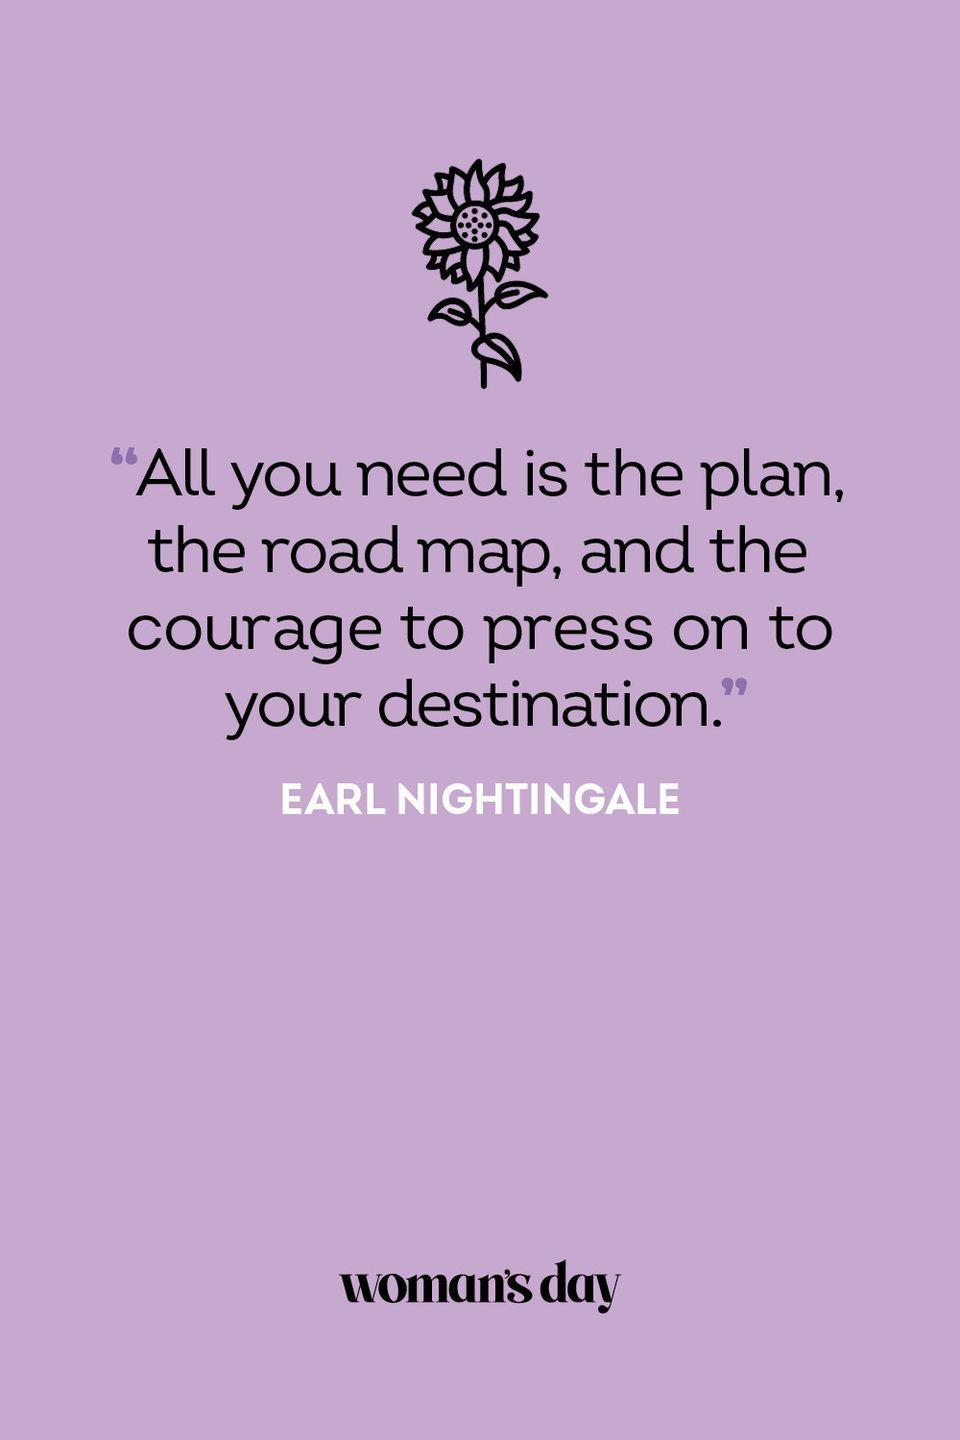 <p>All you need is the plan, the road map, and the courage to press on to your destination.</p>